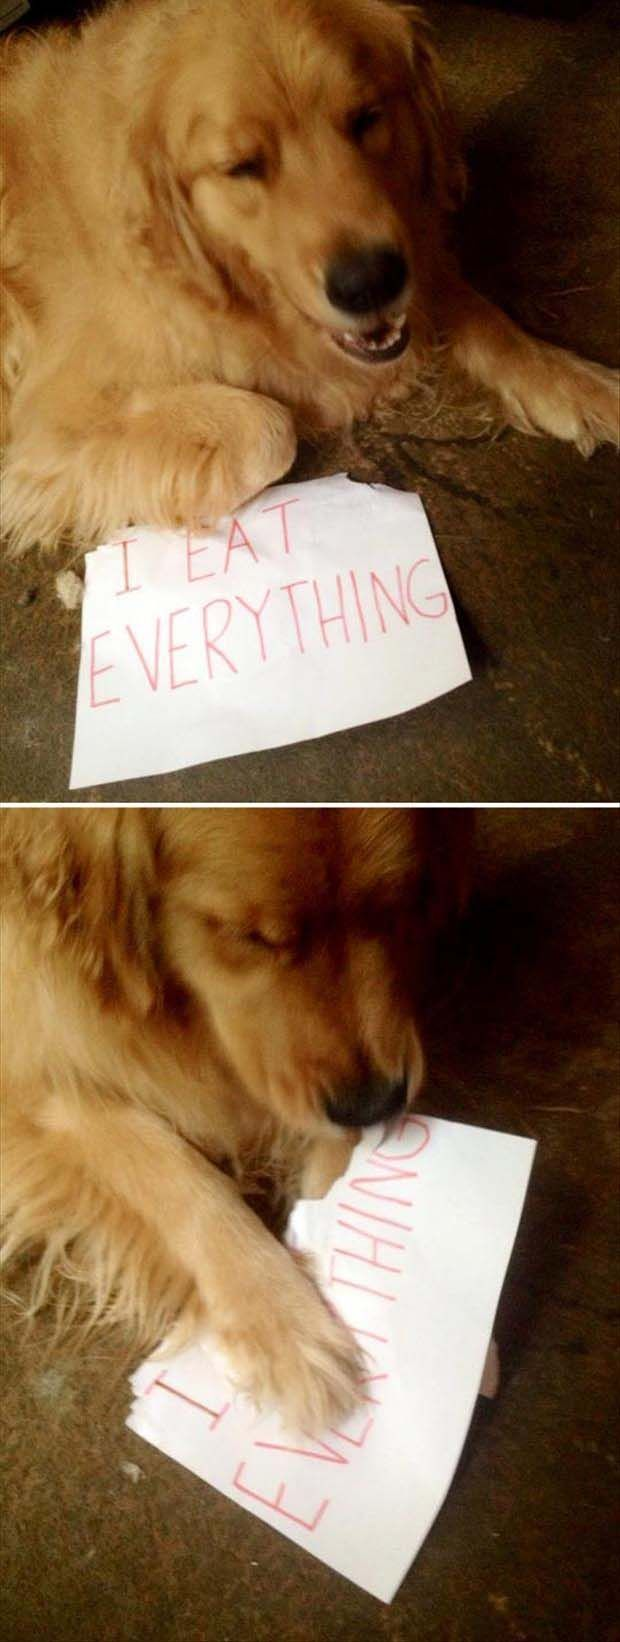 99 Of The Funniest Pinterest Pictures We've Ever Seen